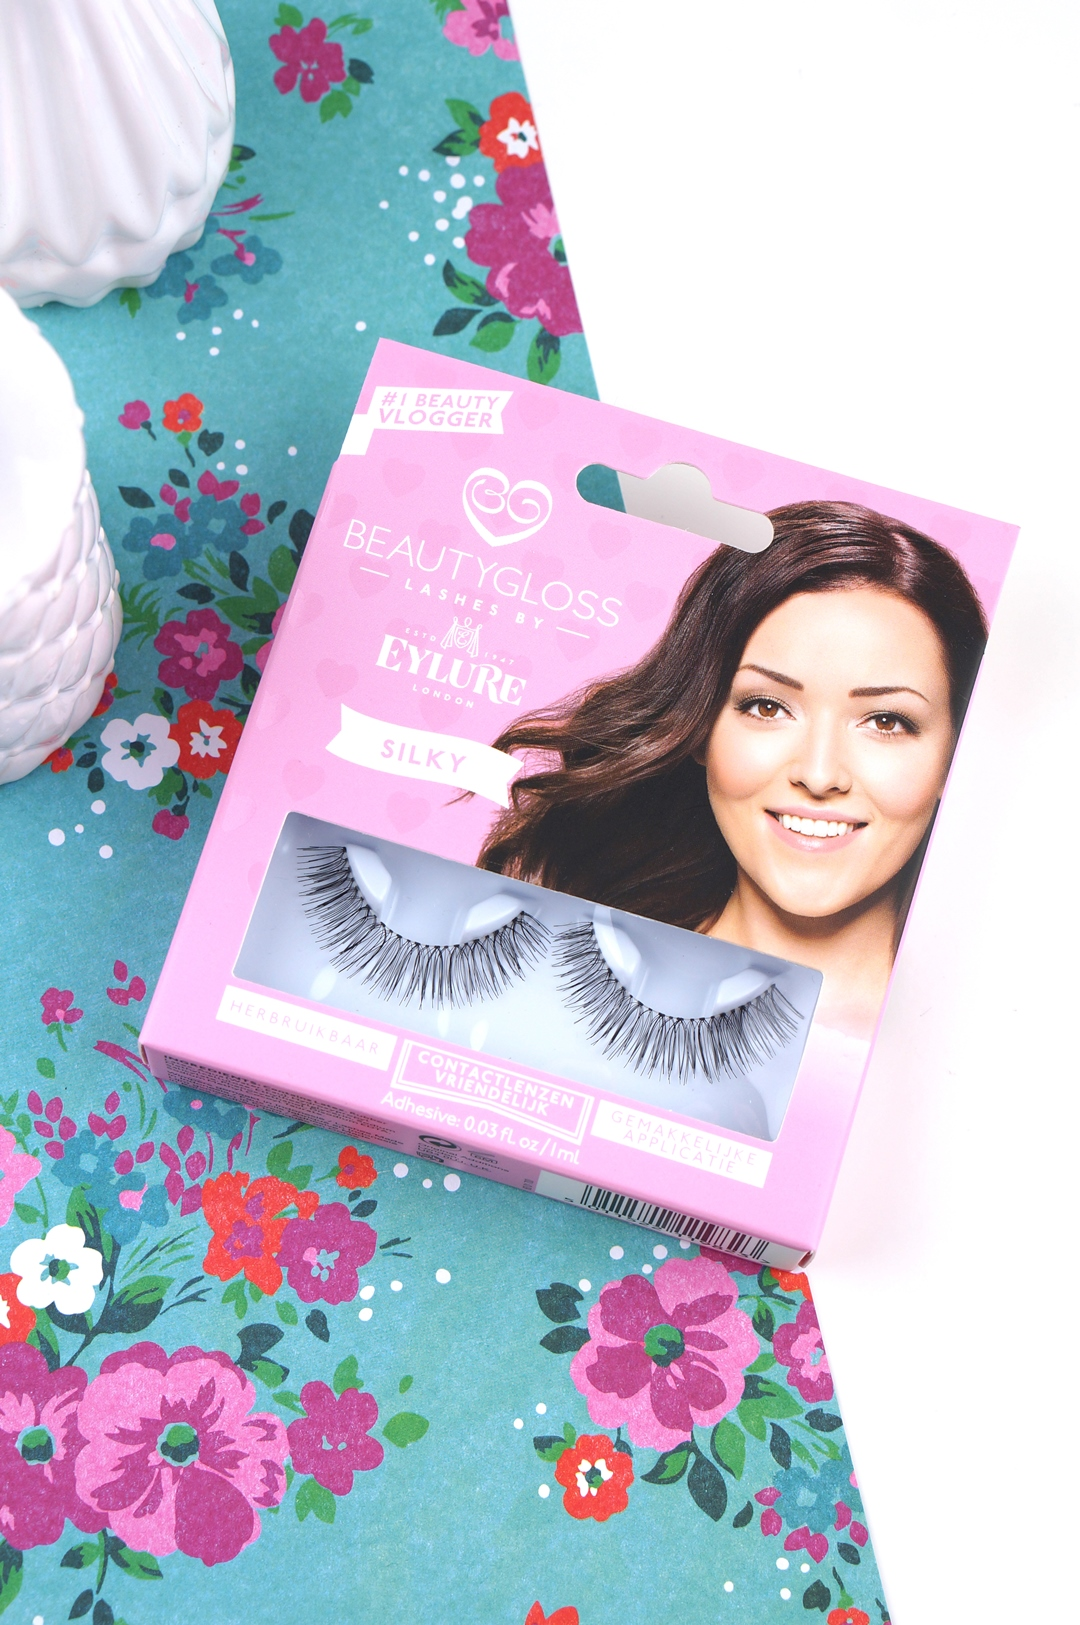 Beautygloss lashes by Eylure, Silky